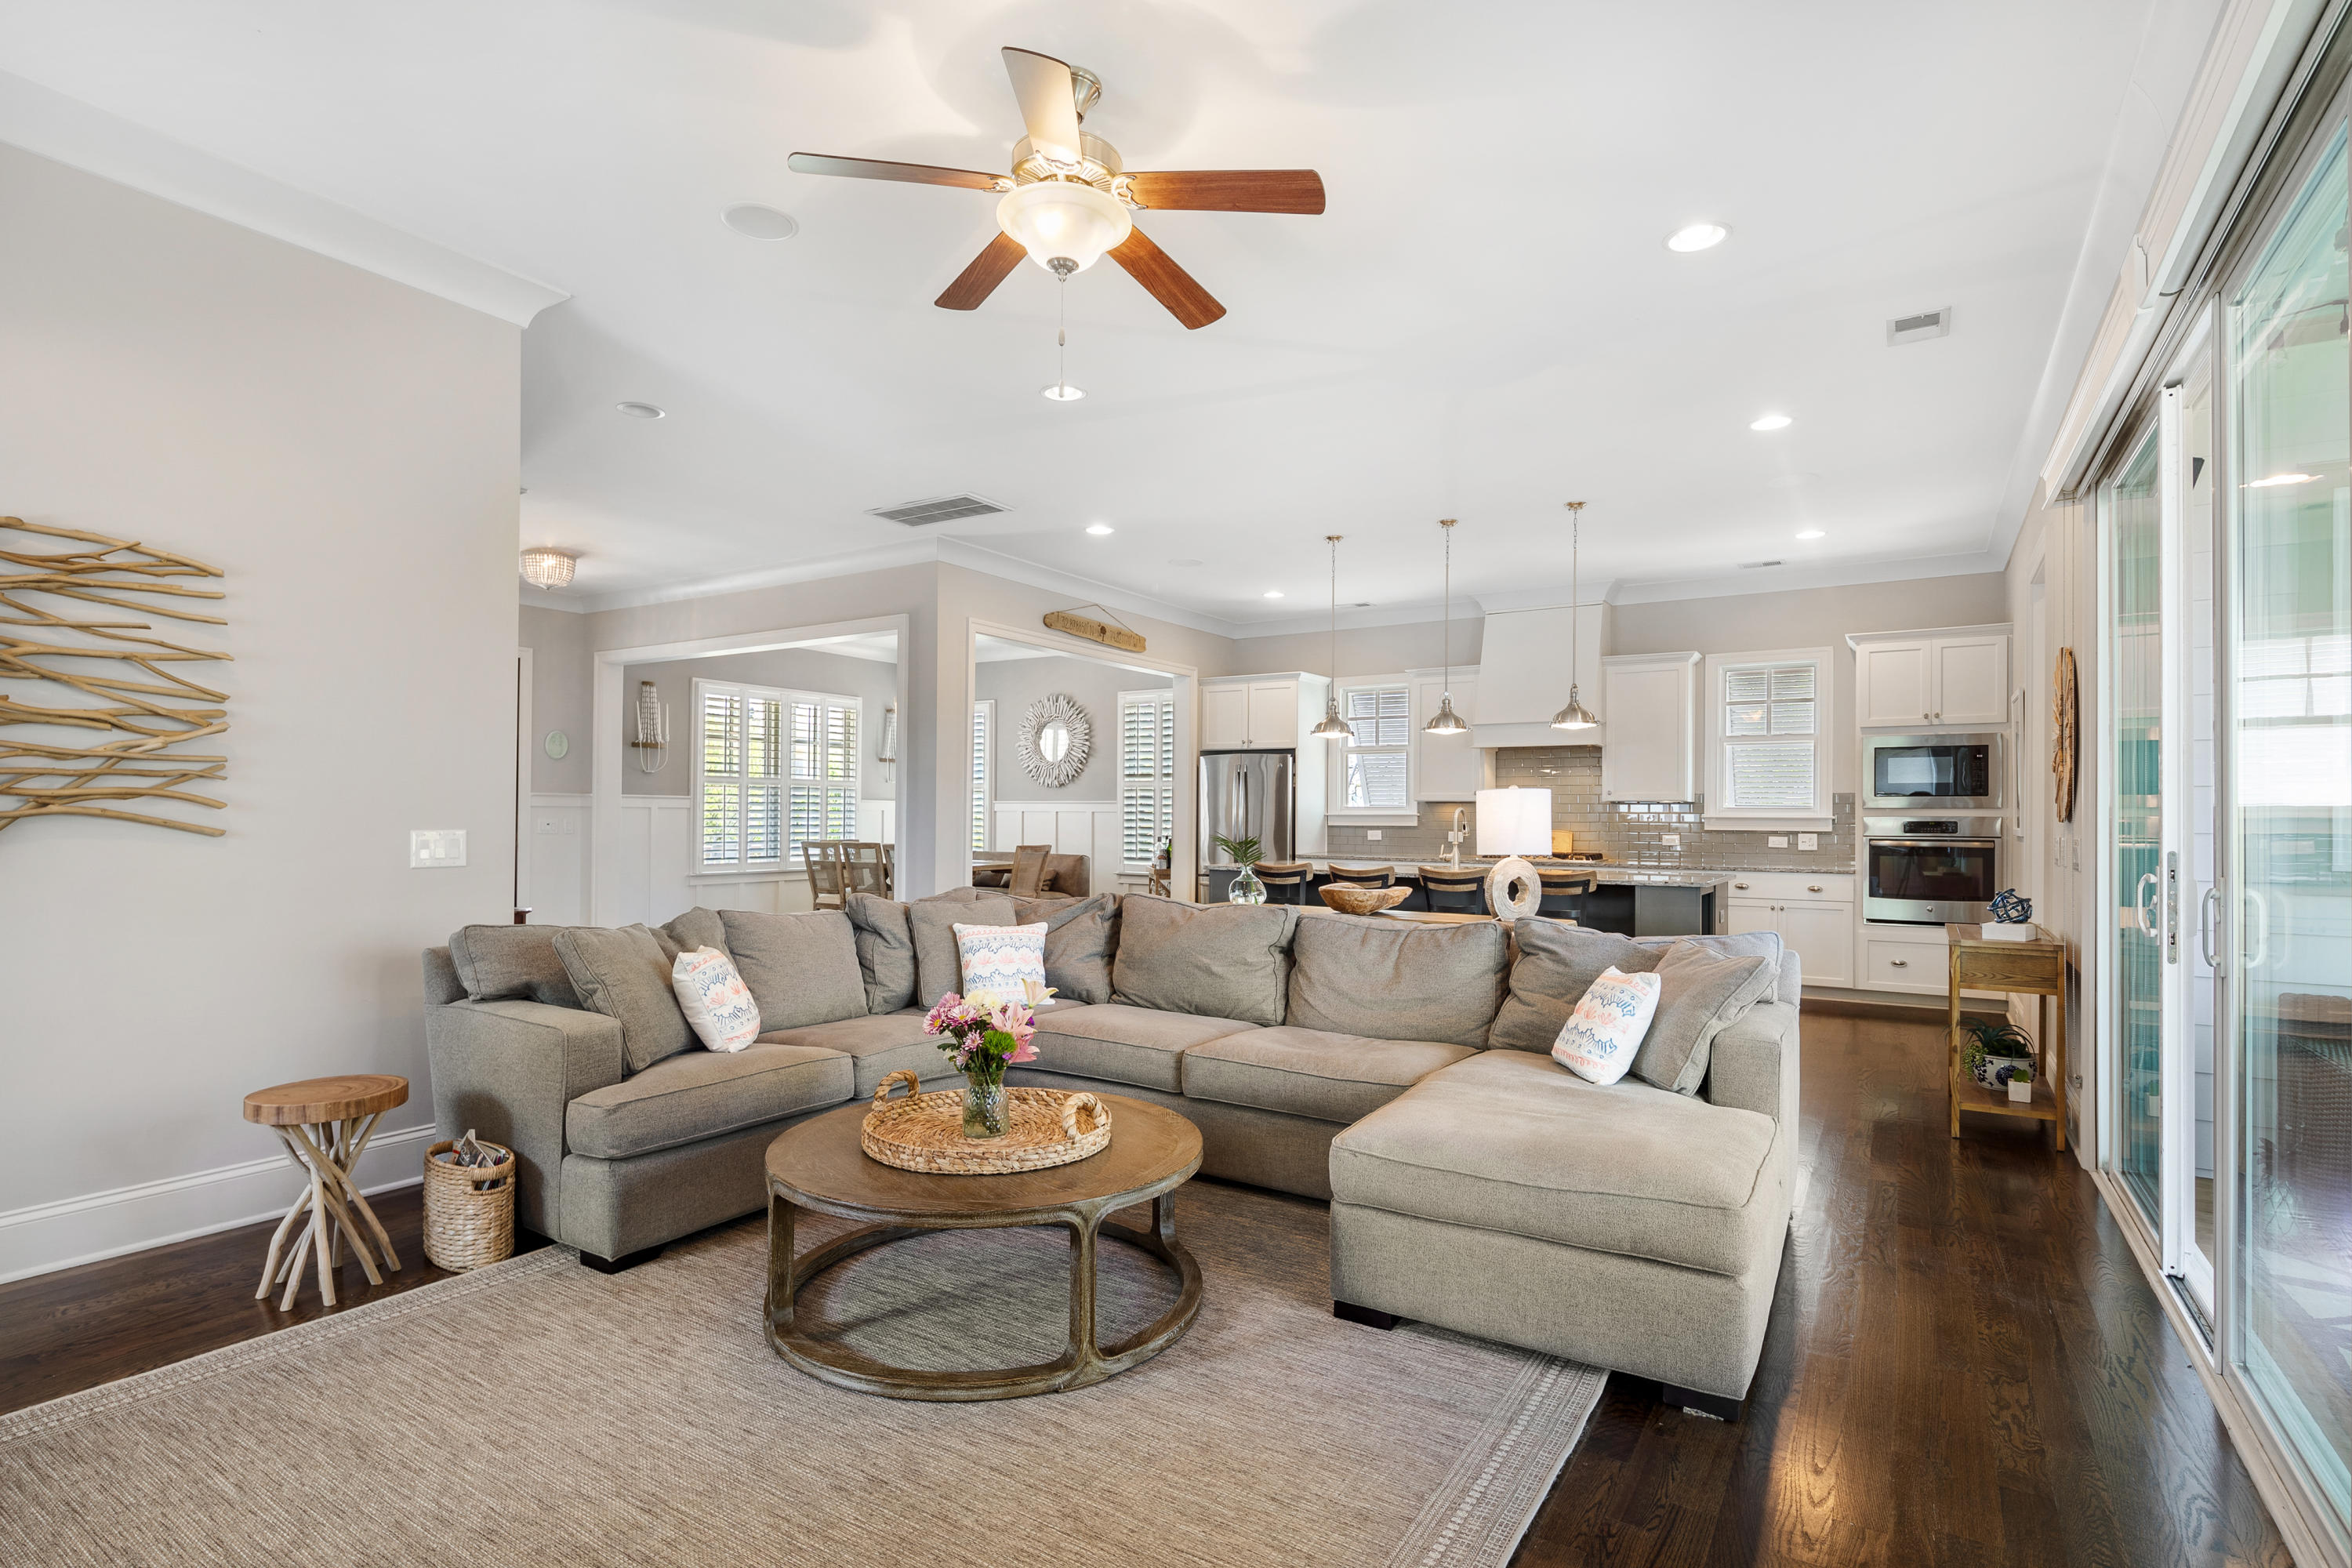 Rivertowne Country Club Homes For Sale - 1633 Rivertowne Country Club, Mount Pleasant, SC - 25